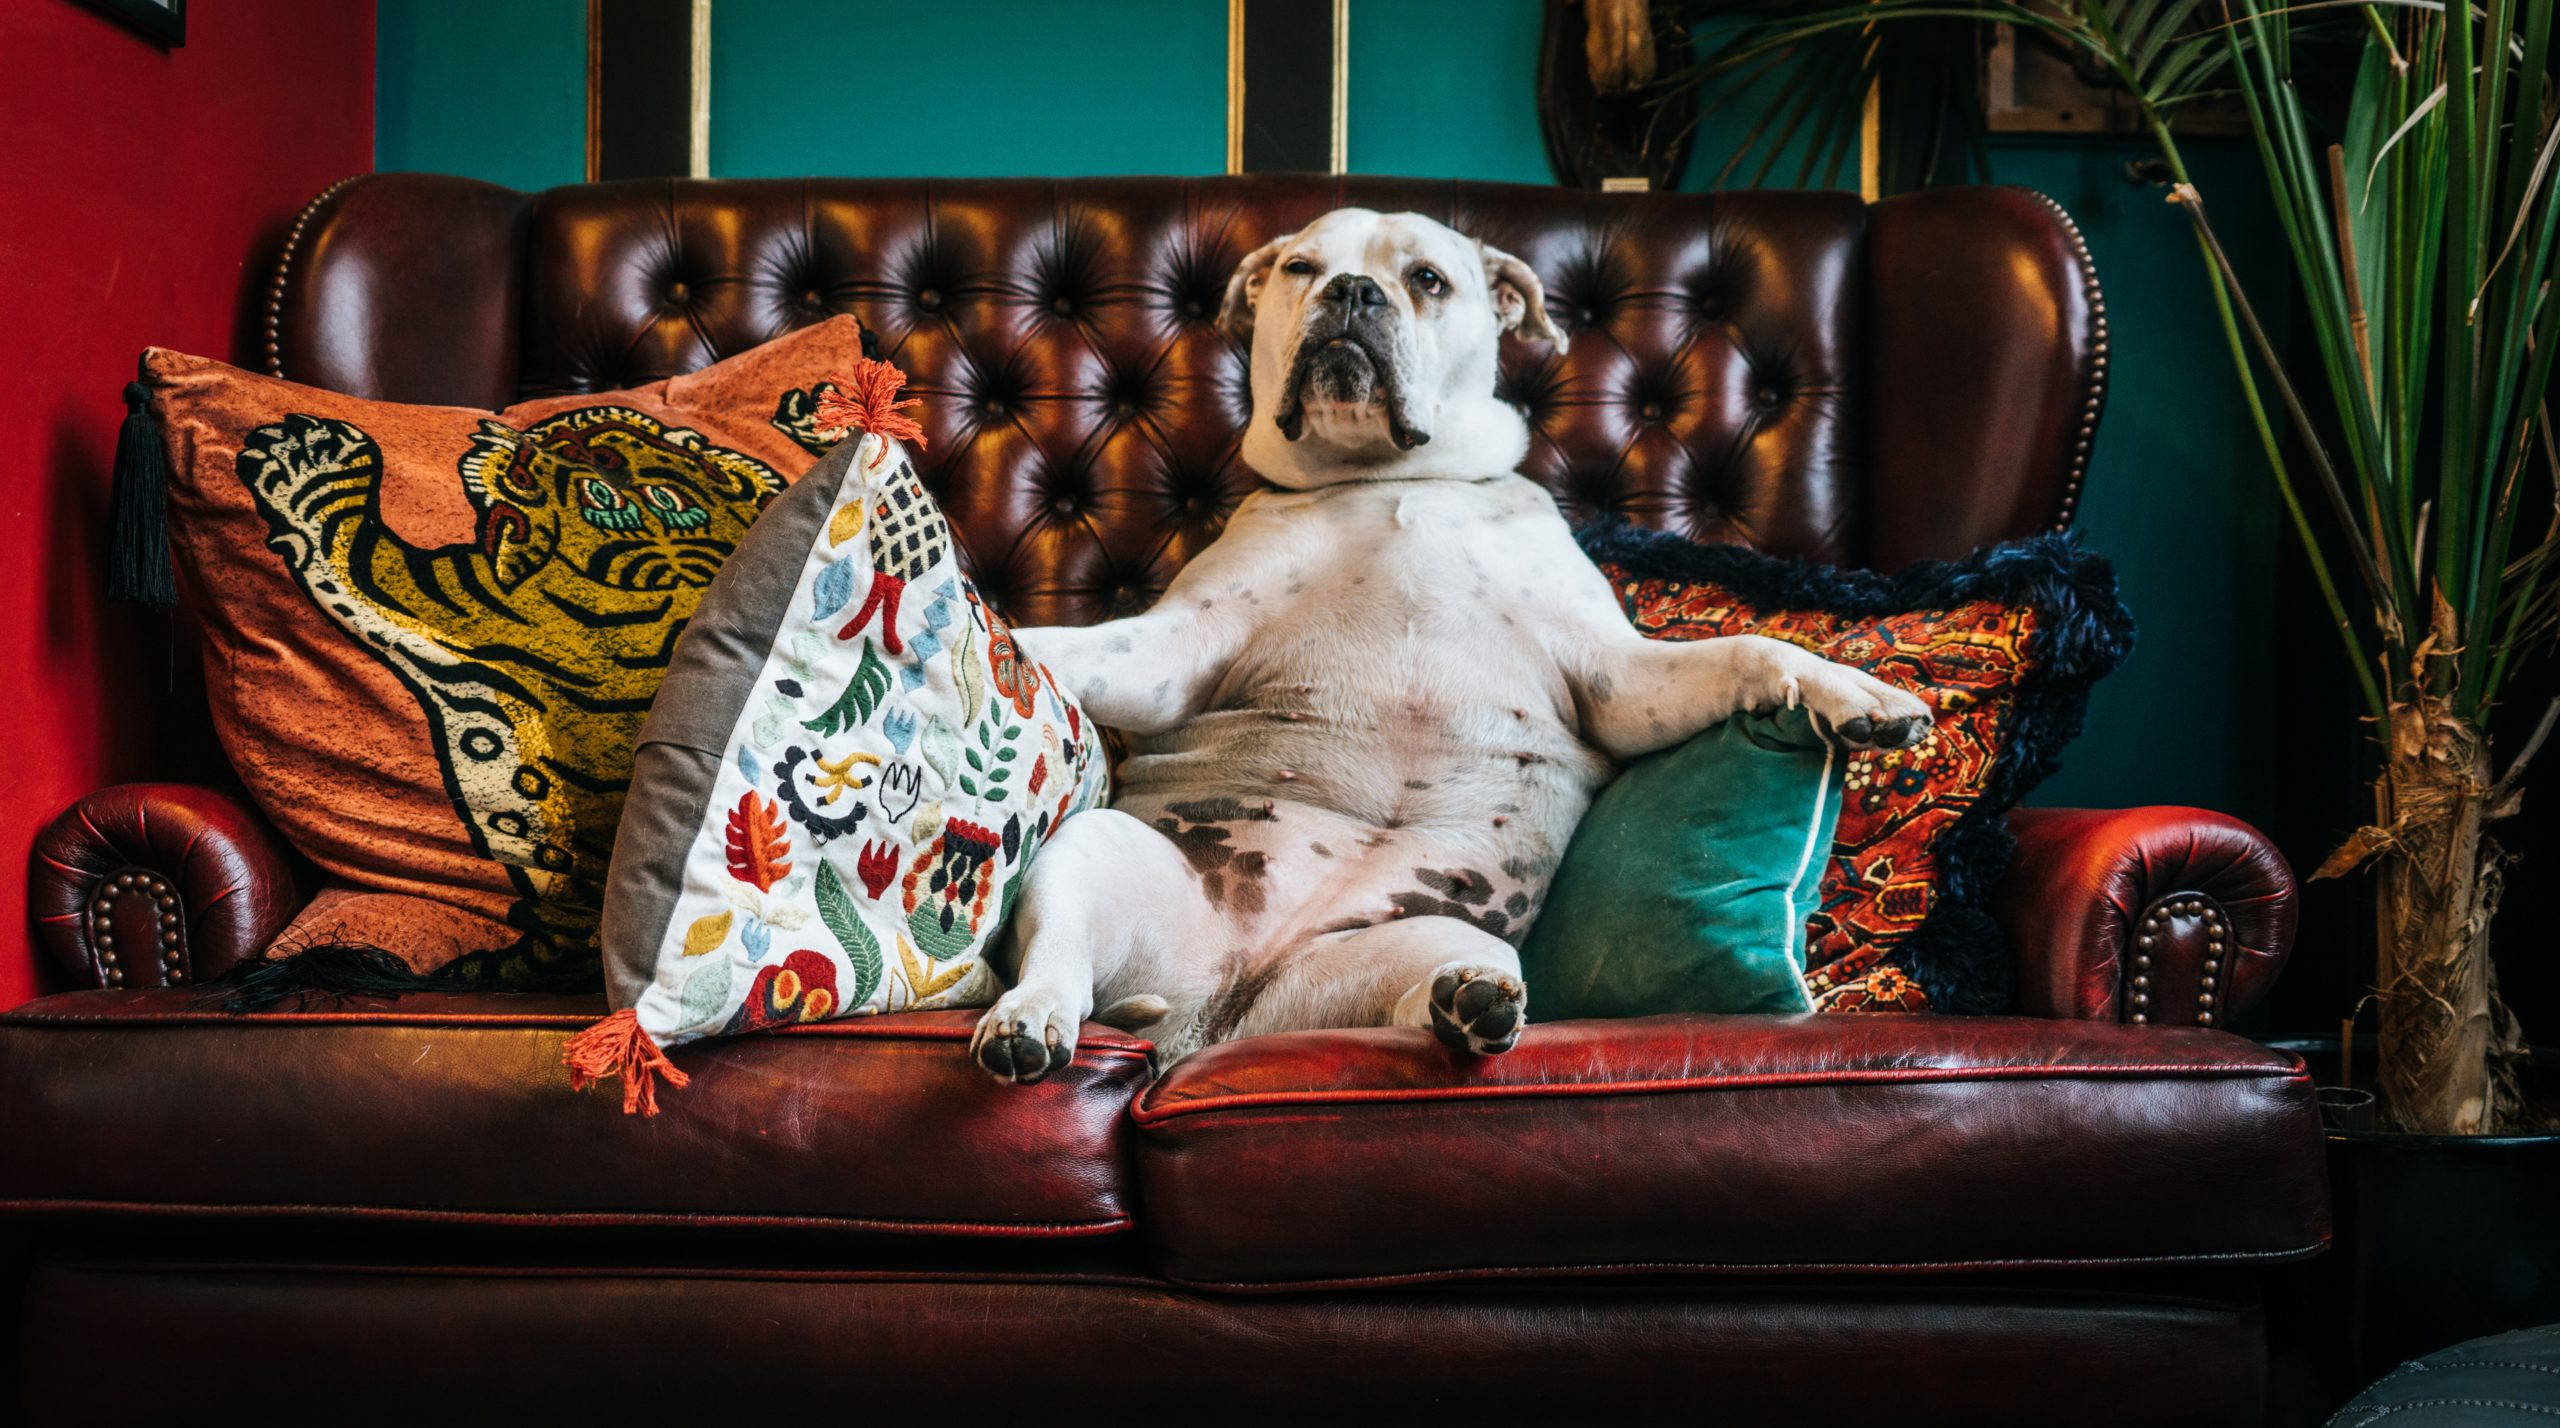 A dog sitting on a leather sofa appearing like he is feeling depressed or anxious and is looking for what to do